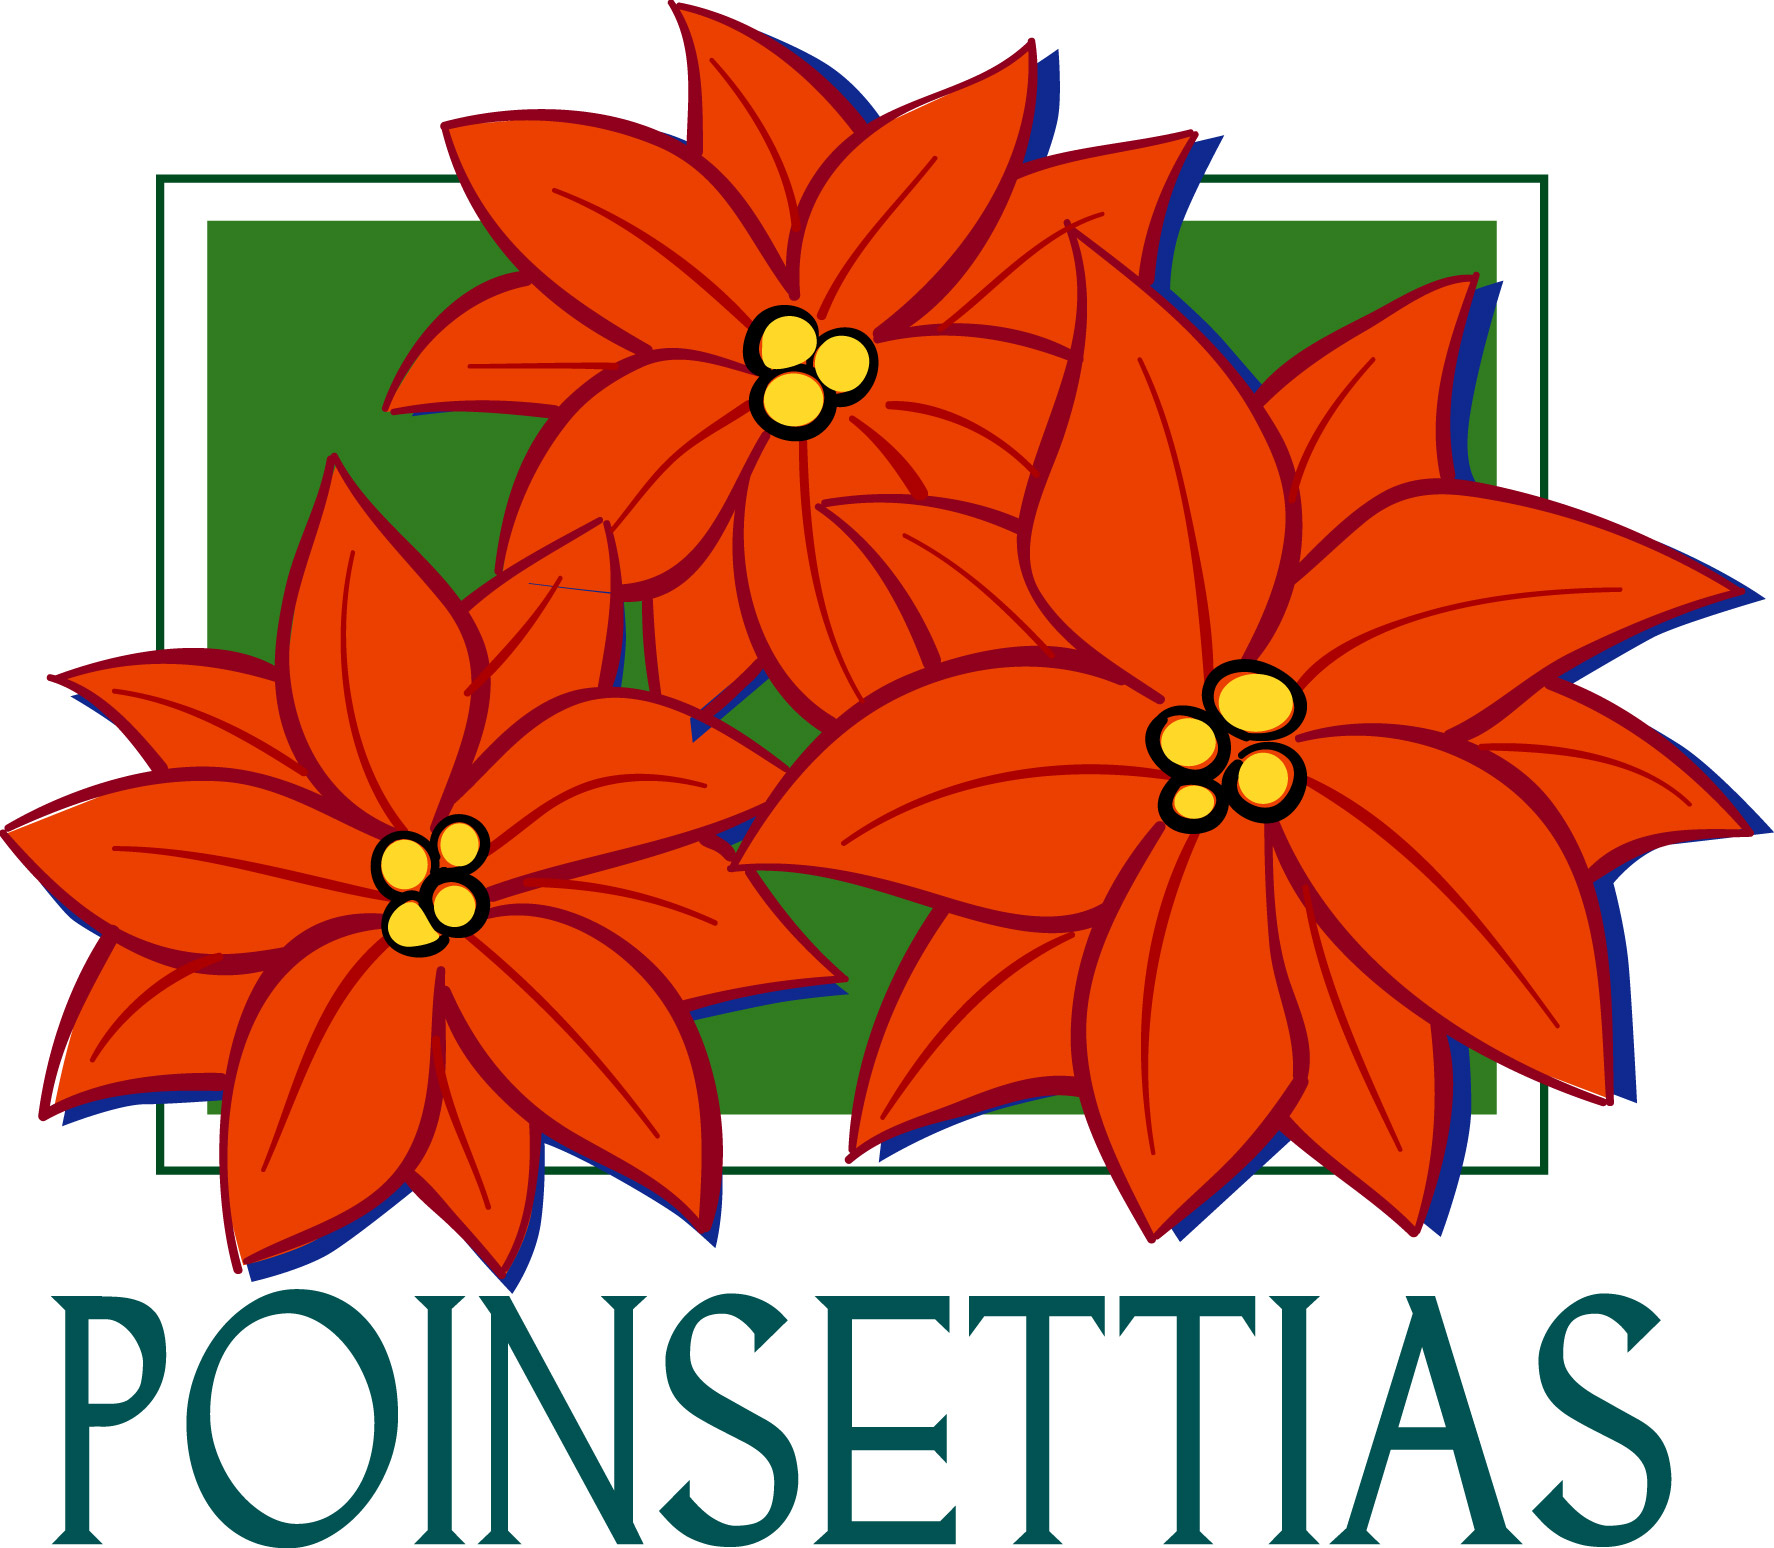 Poinsettias | Cheap Filing Cabinets